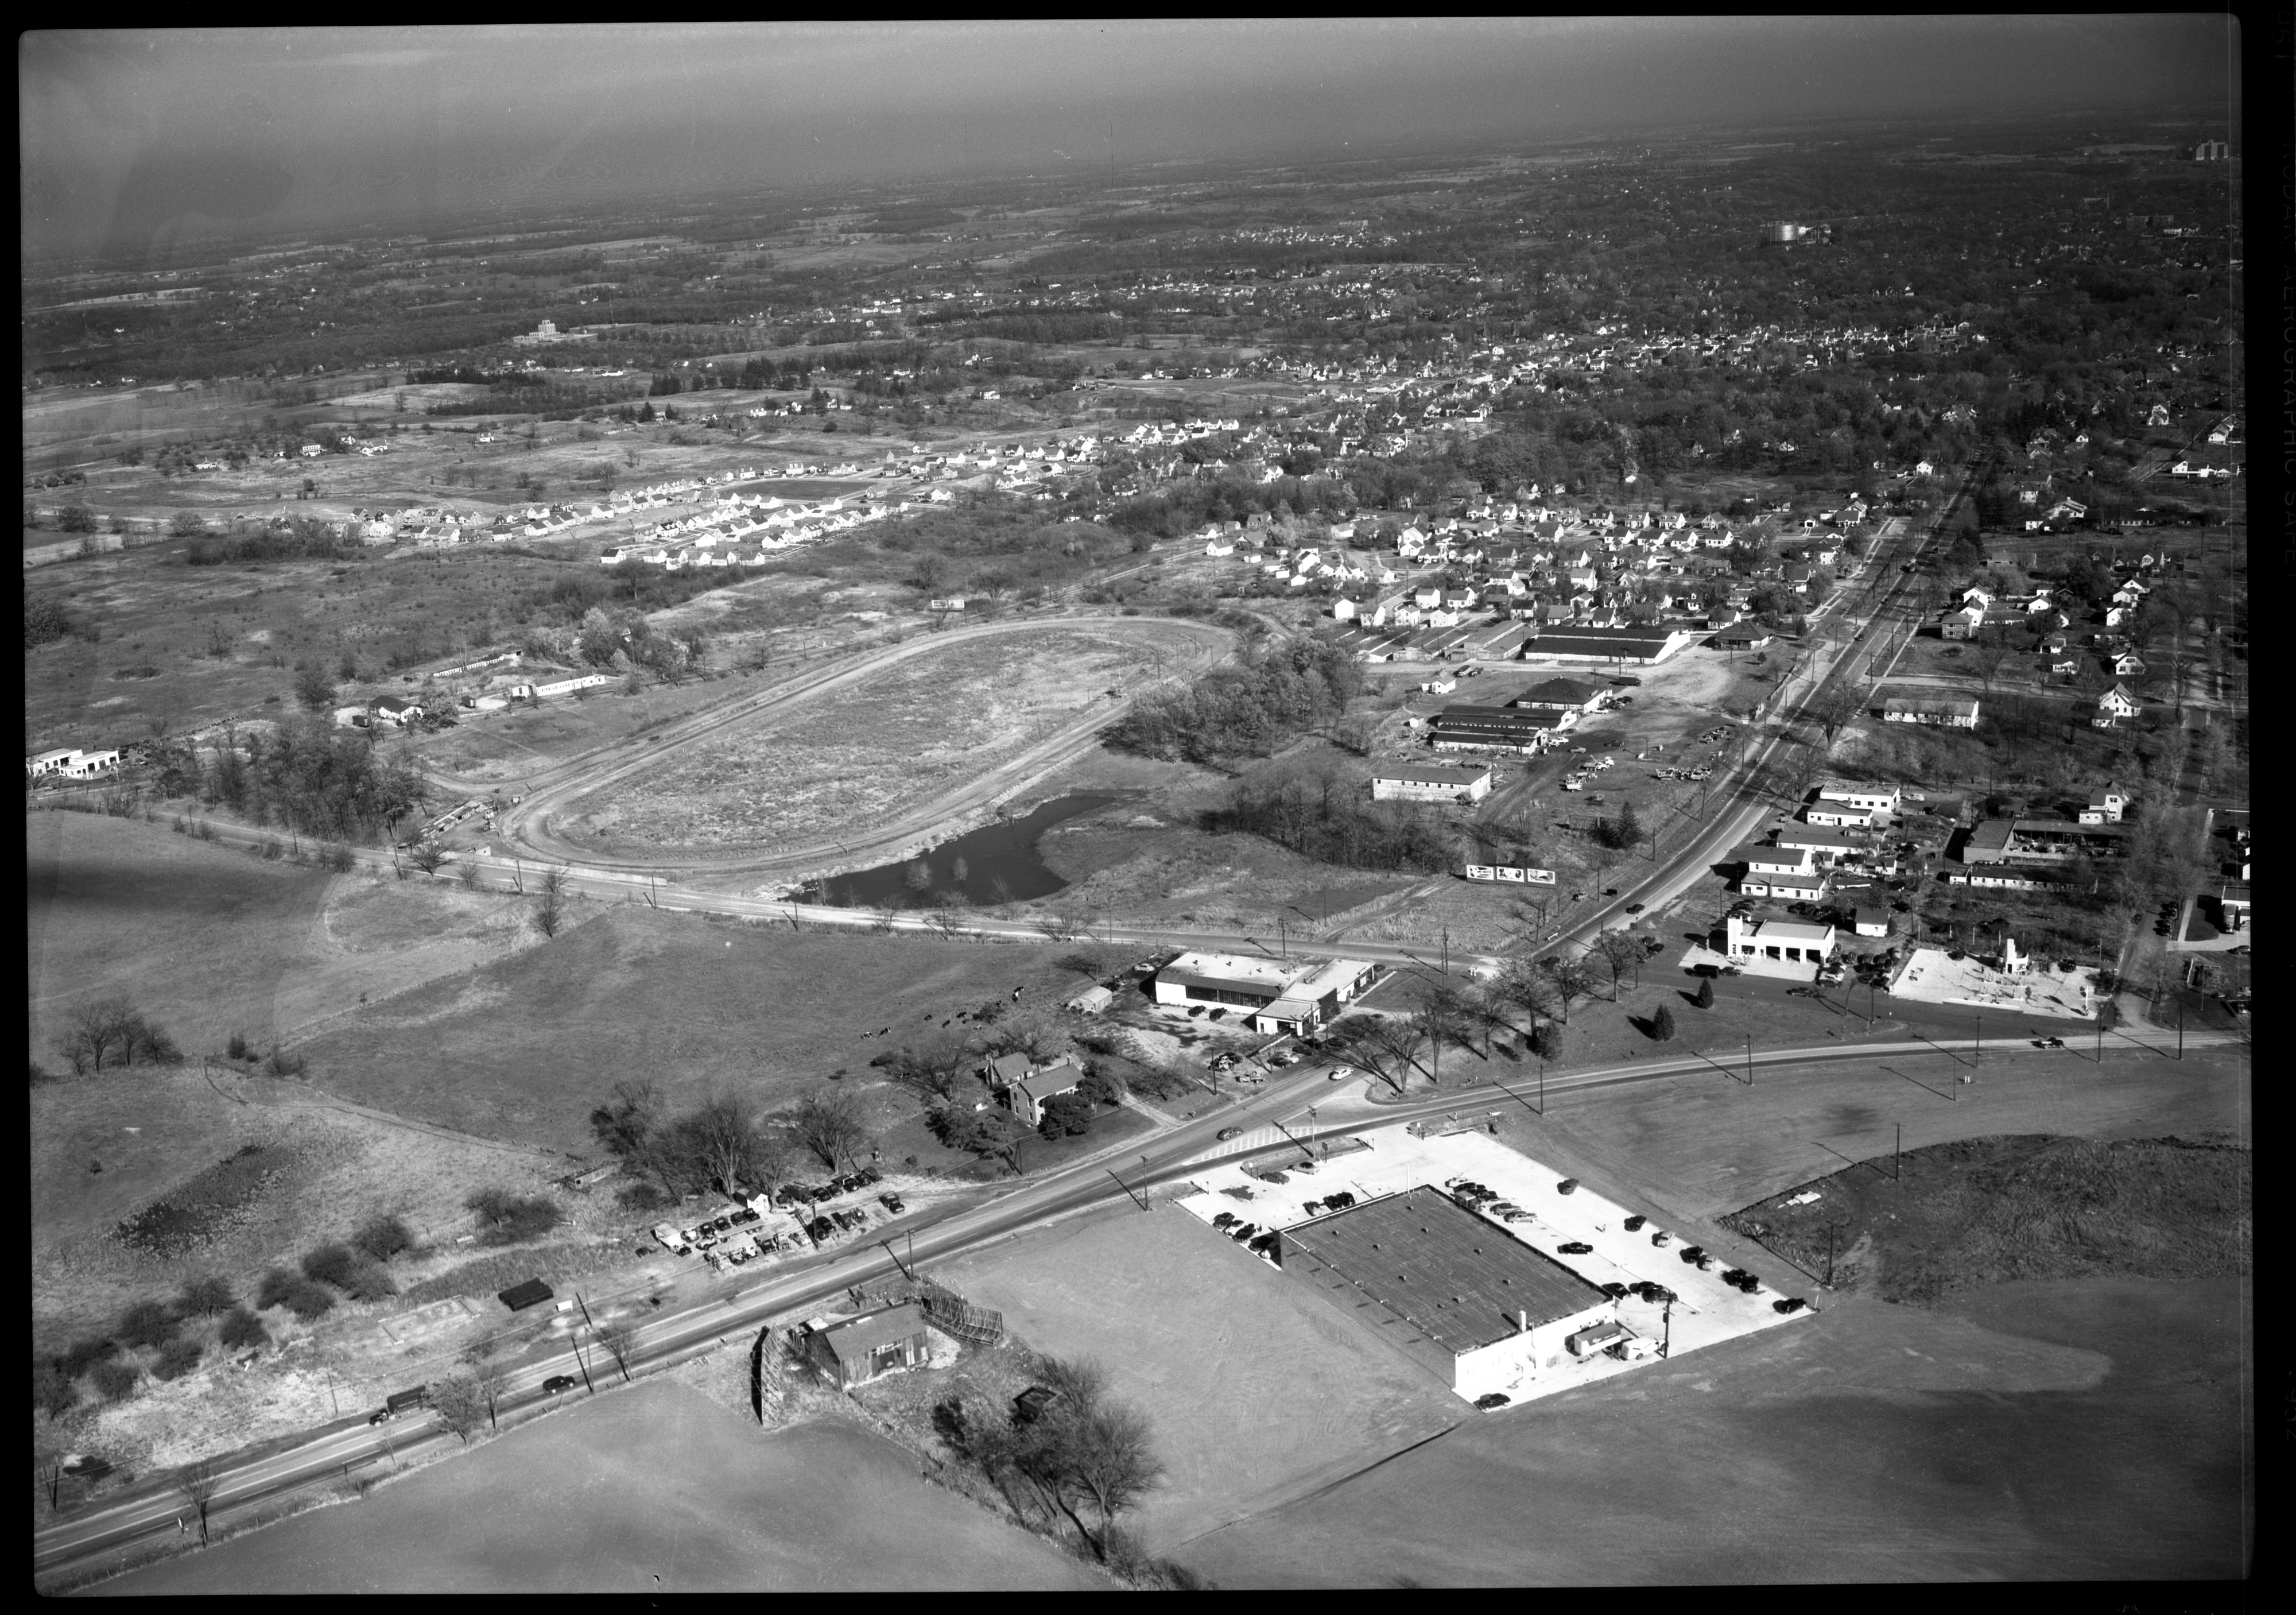 Washtenaw County Fairgrounds from the air, October 1951 image